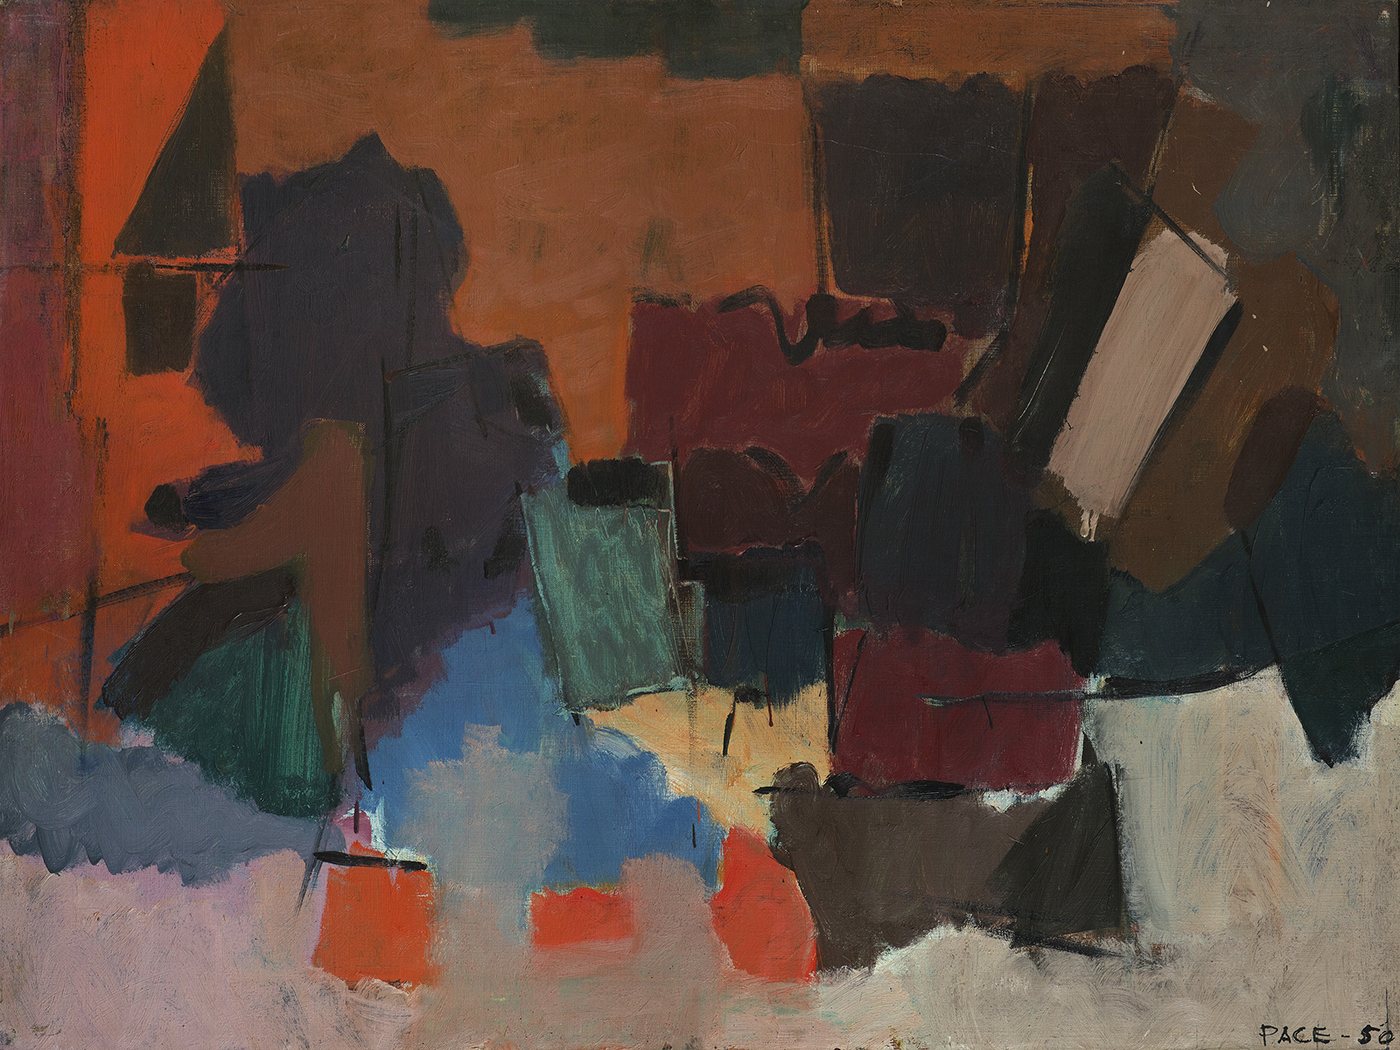 Untitled (50-2), 1950                   Oil on Canvas 24 1/2 x 32 1/2 x 1 in.